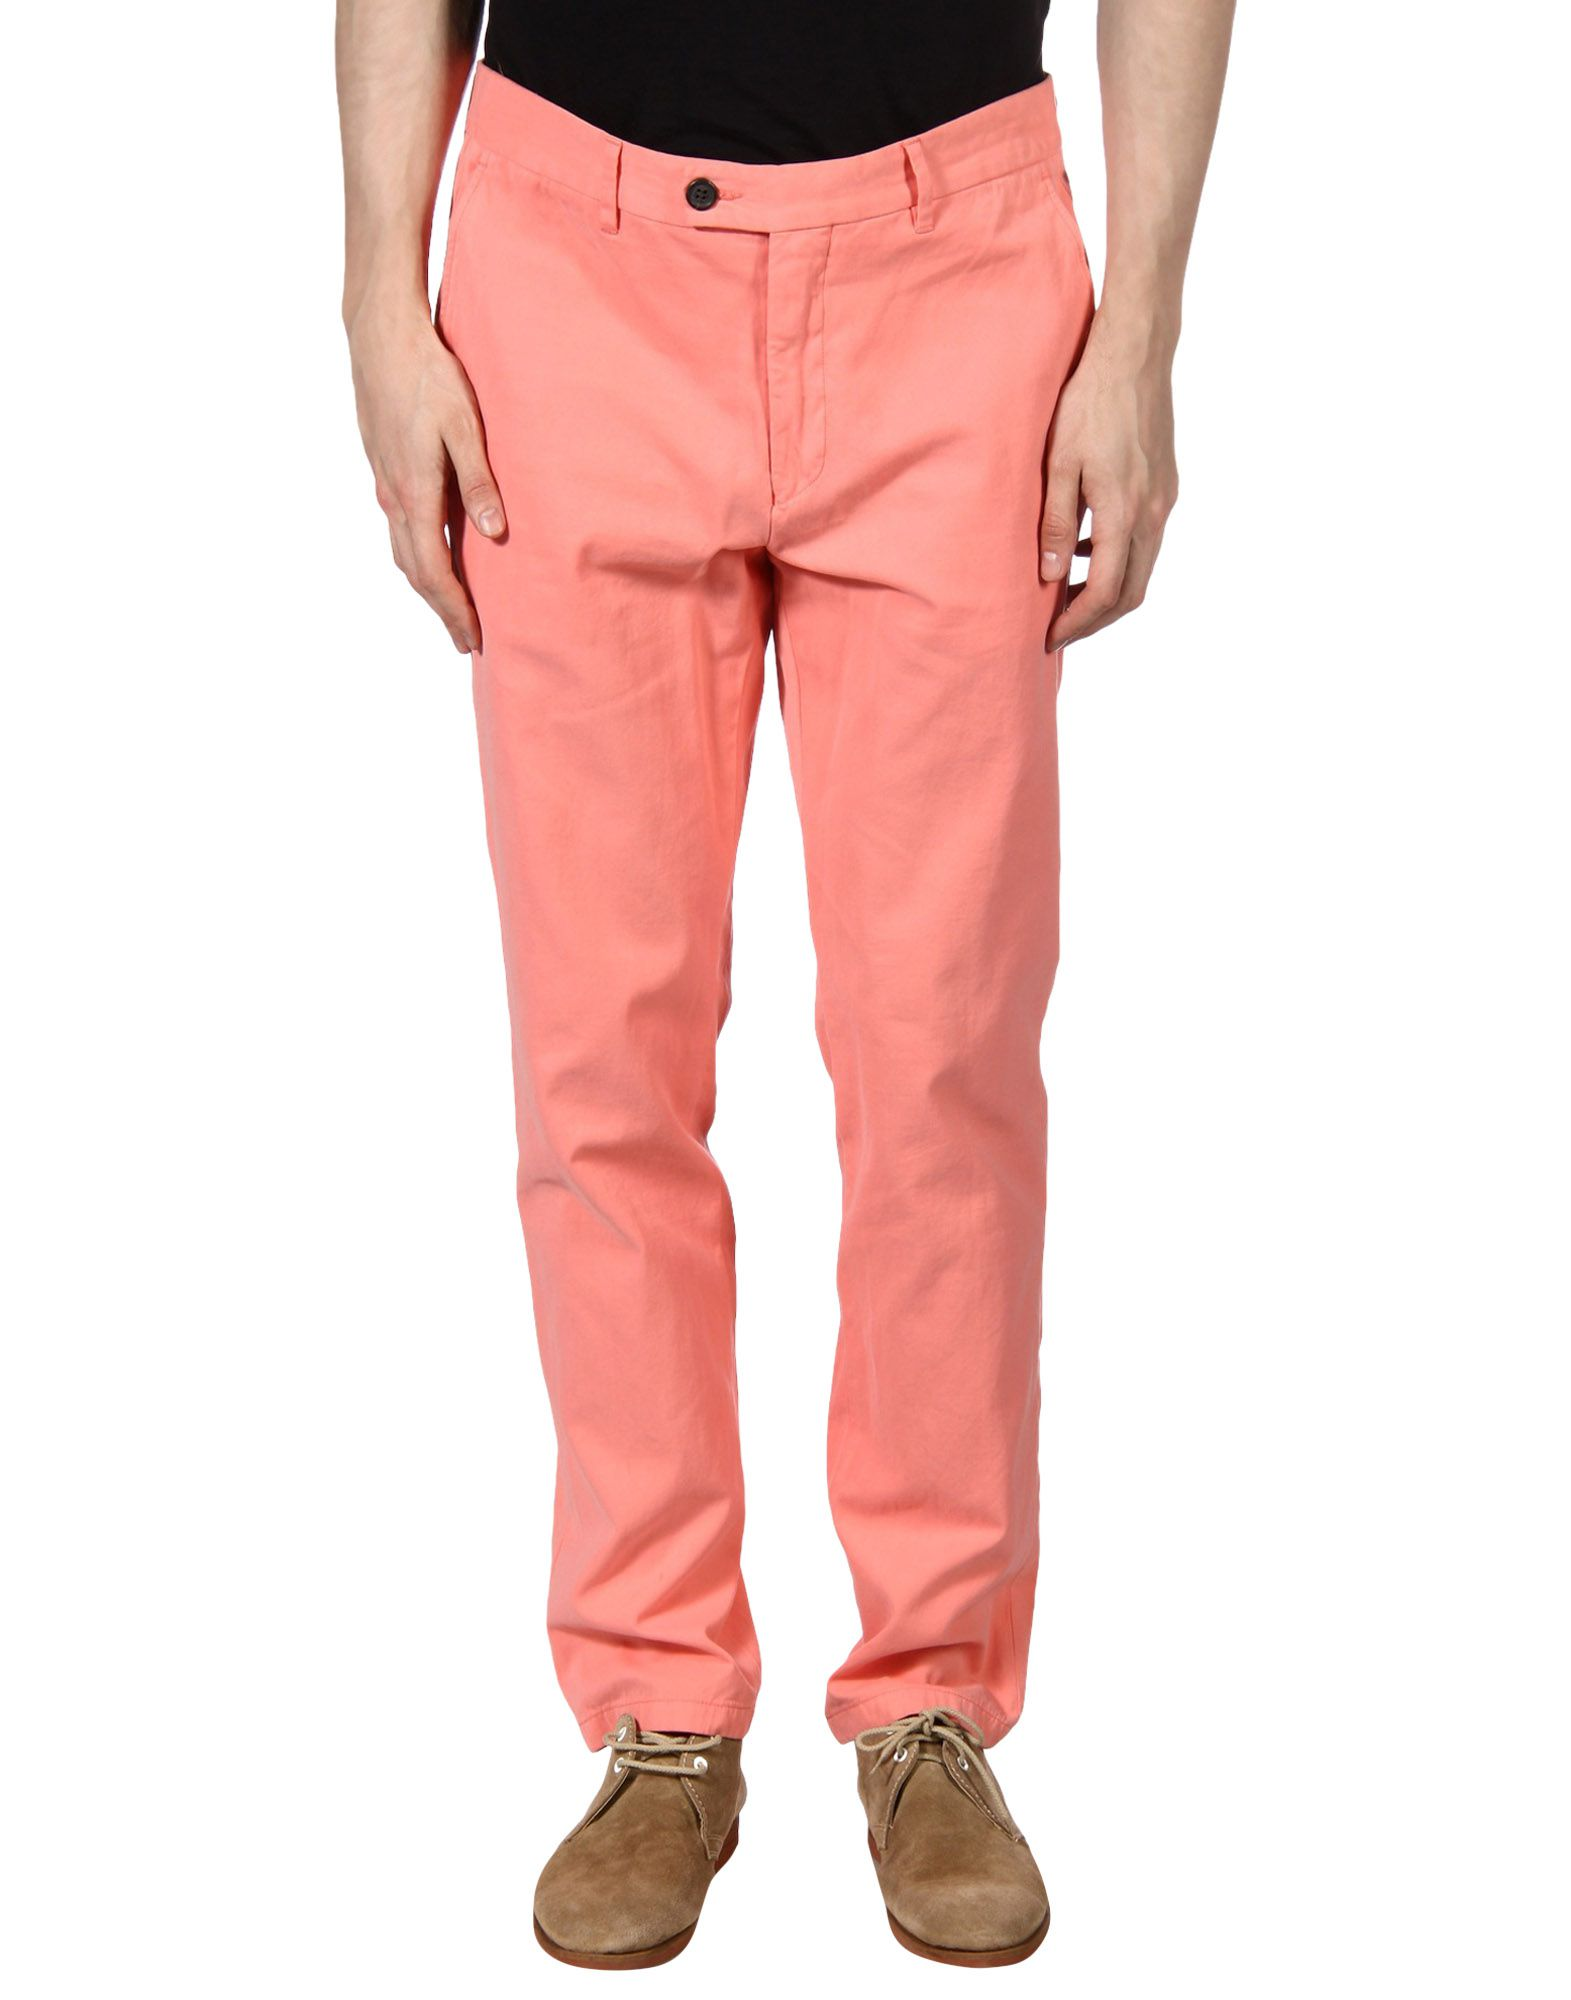 HENTSCH MAN Casual Pants in Salmon Pink